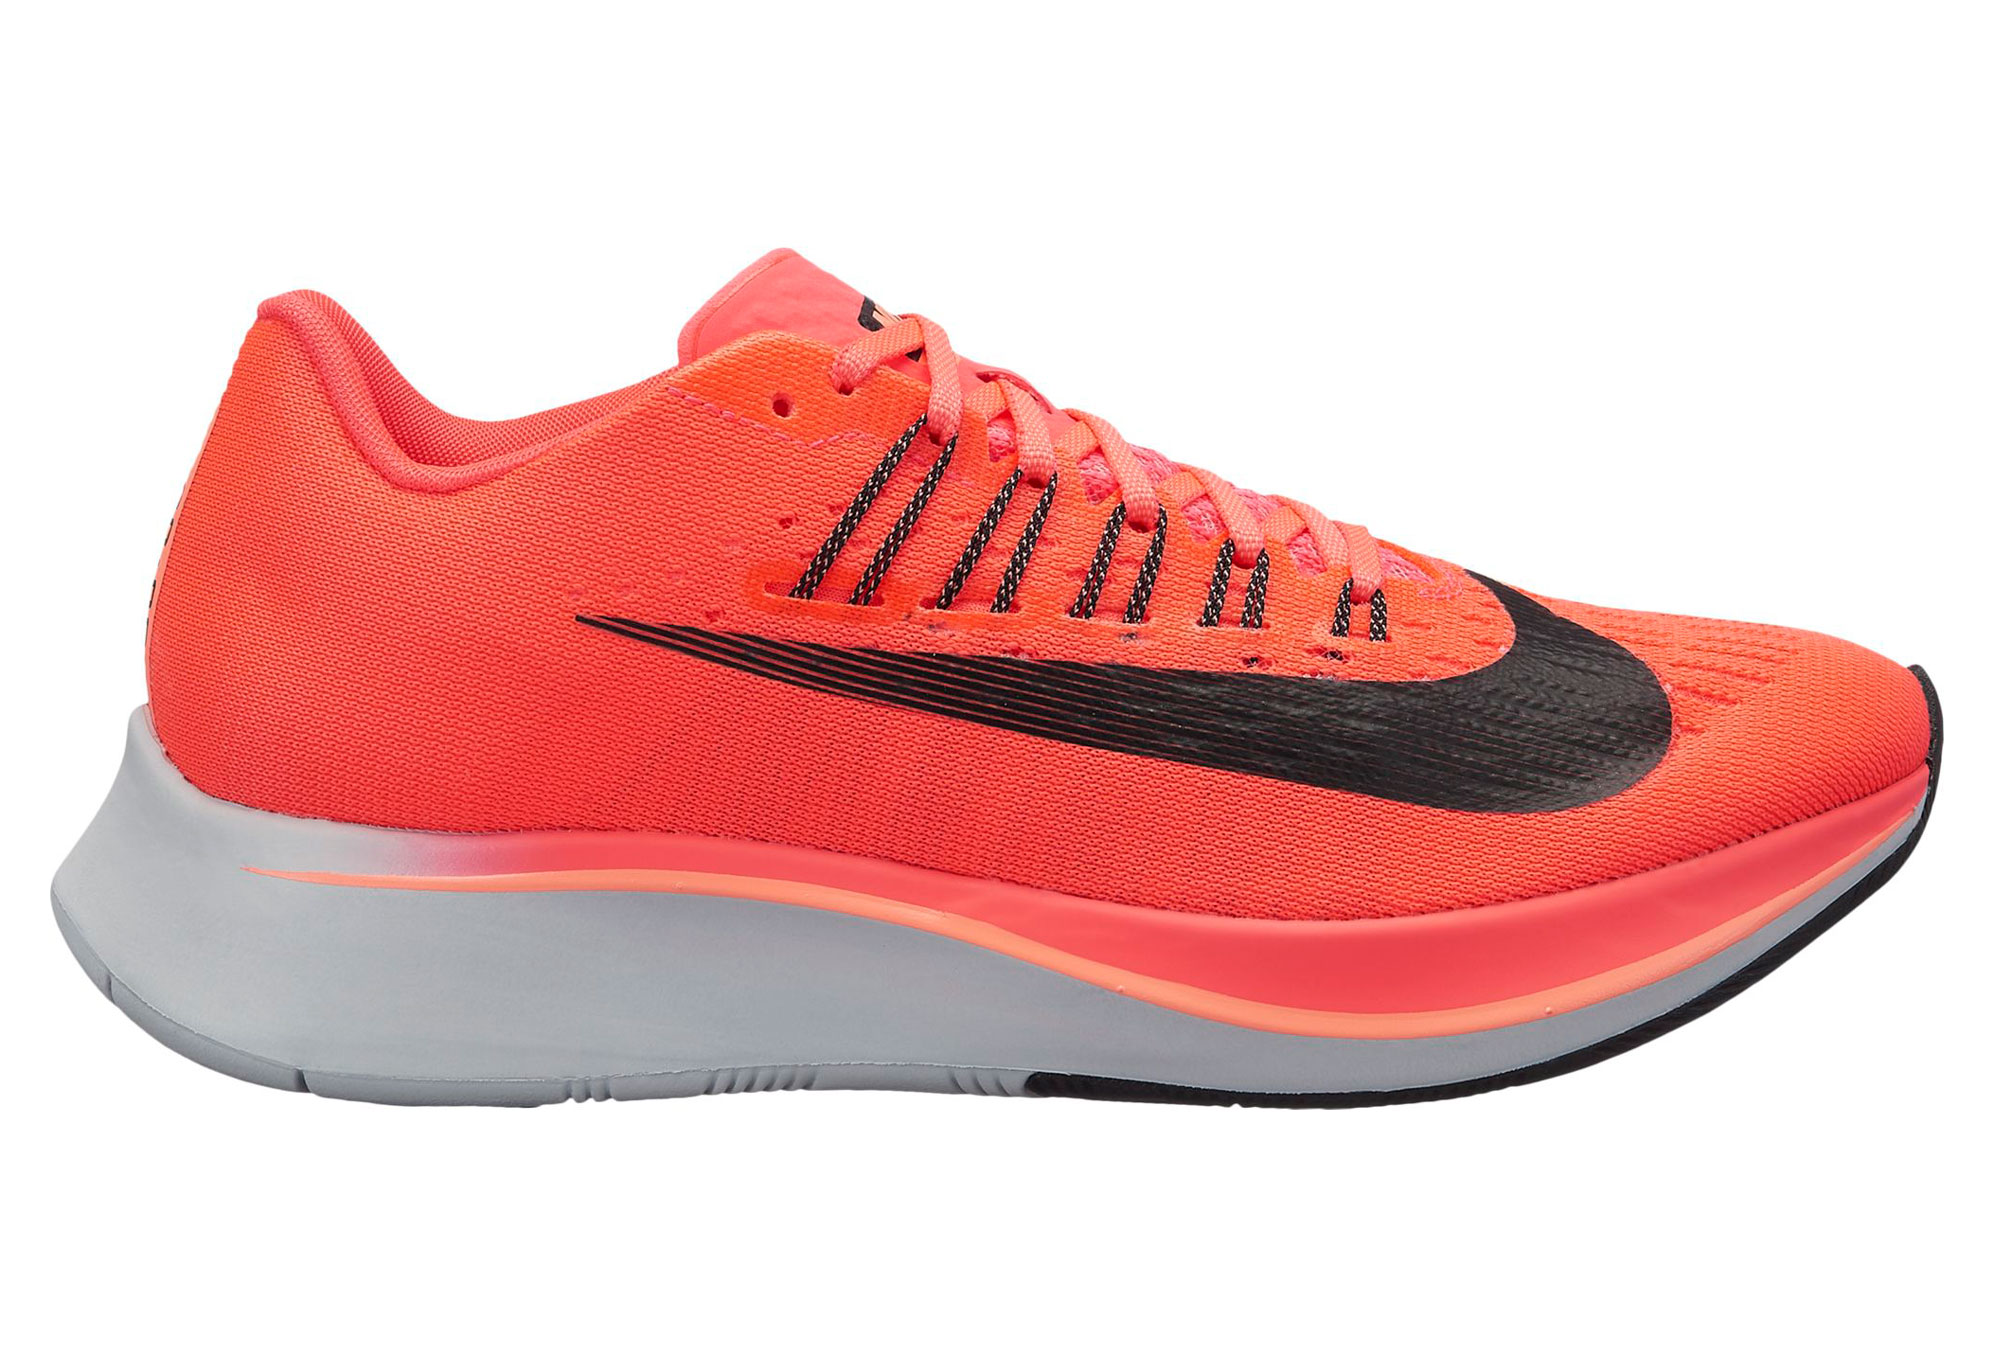 Orange Scarpe Donna Nike Zoom Fly vN8nmy0wOP